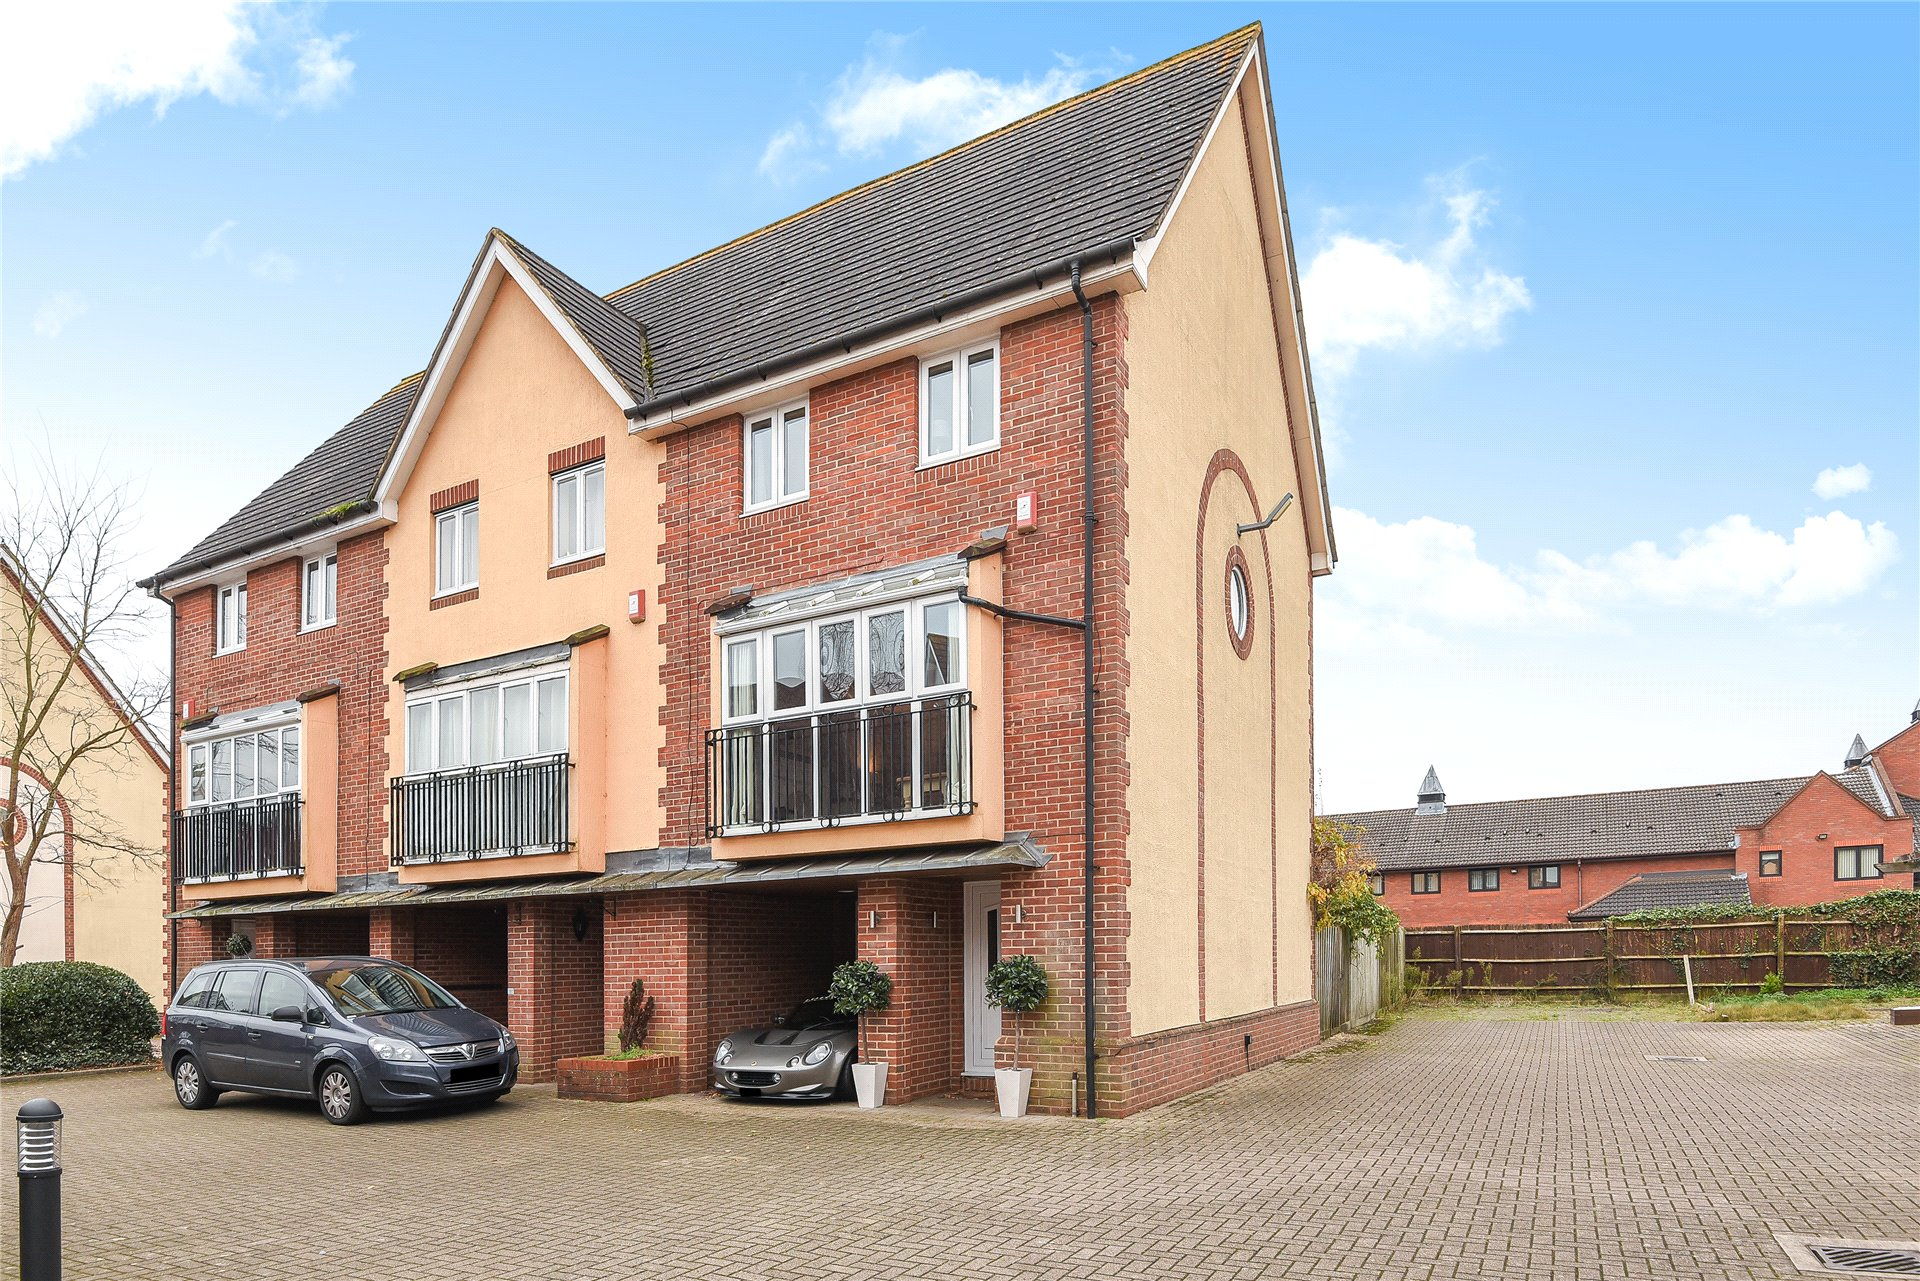 3 Bedrooms End Of Terrace House for sale in Hartigan Place, Woodley, Reading, Berkshire, RG5